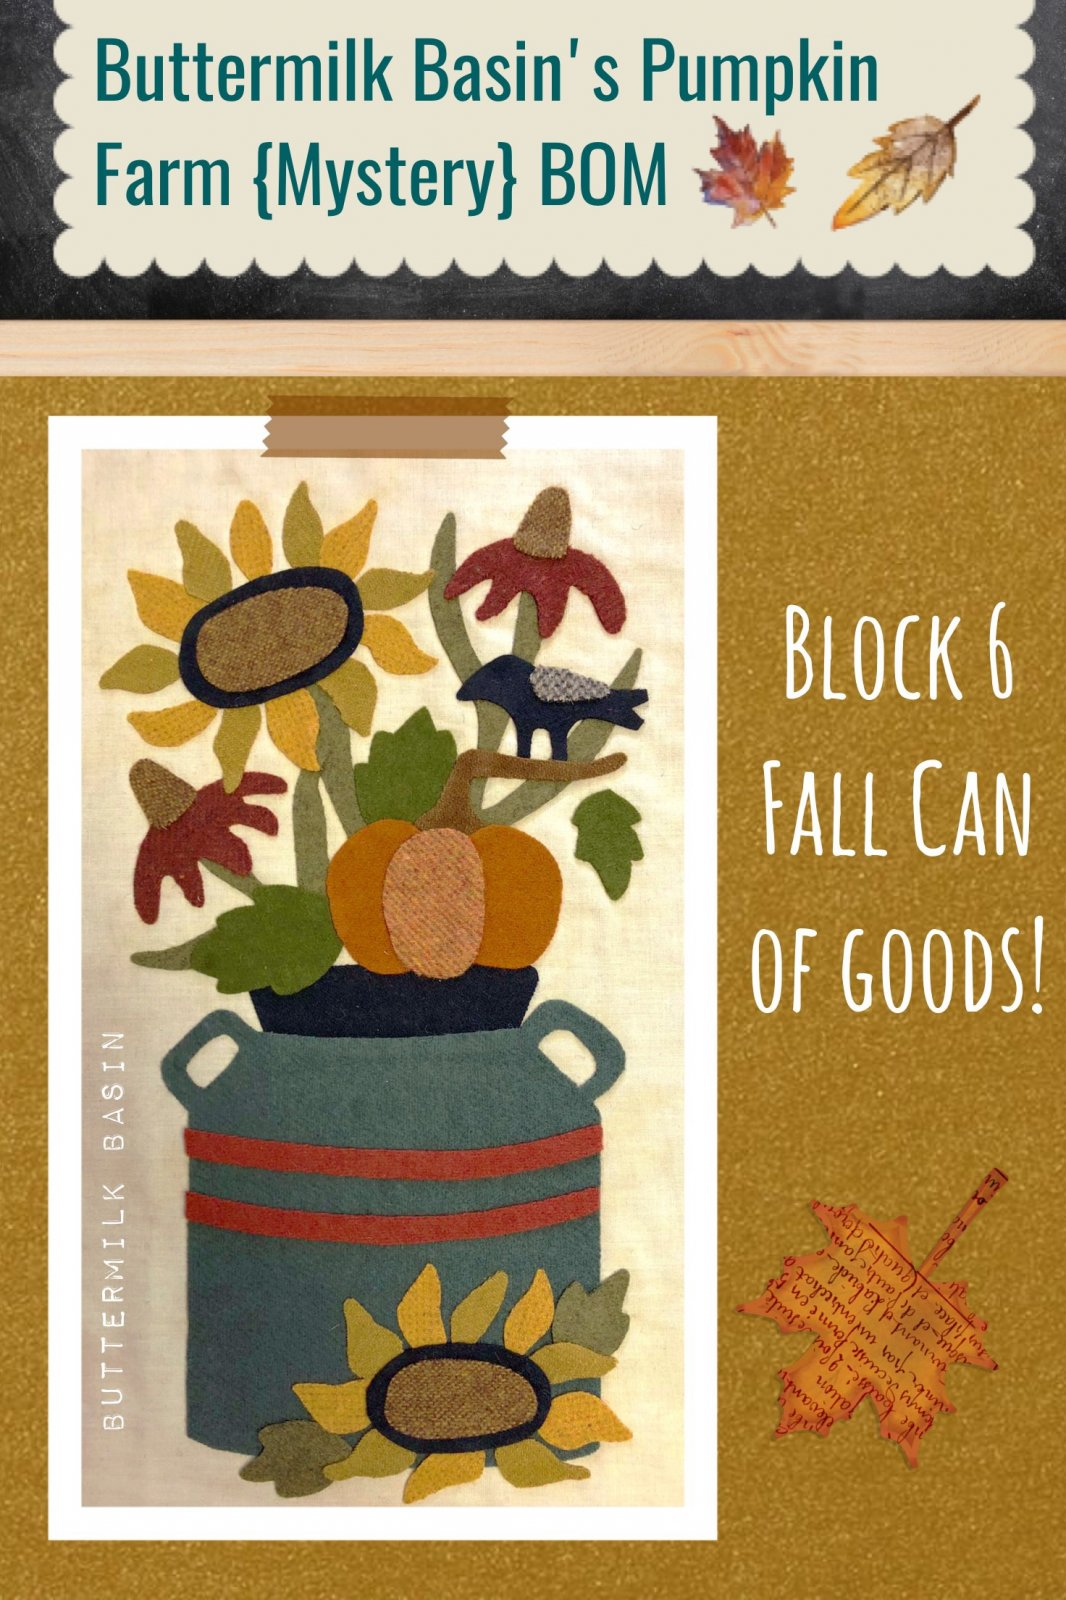 Buttermilk Basin's Pumpkin Farm {Mystery} BOM, Block 6 Kit and Pattern